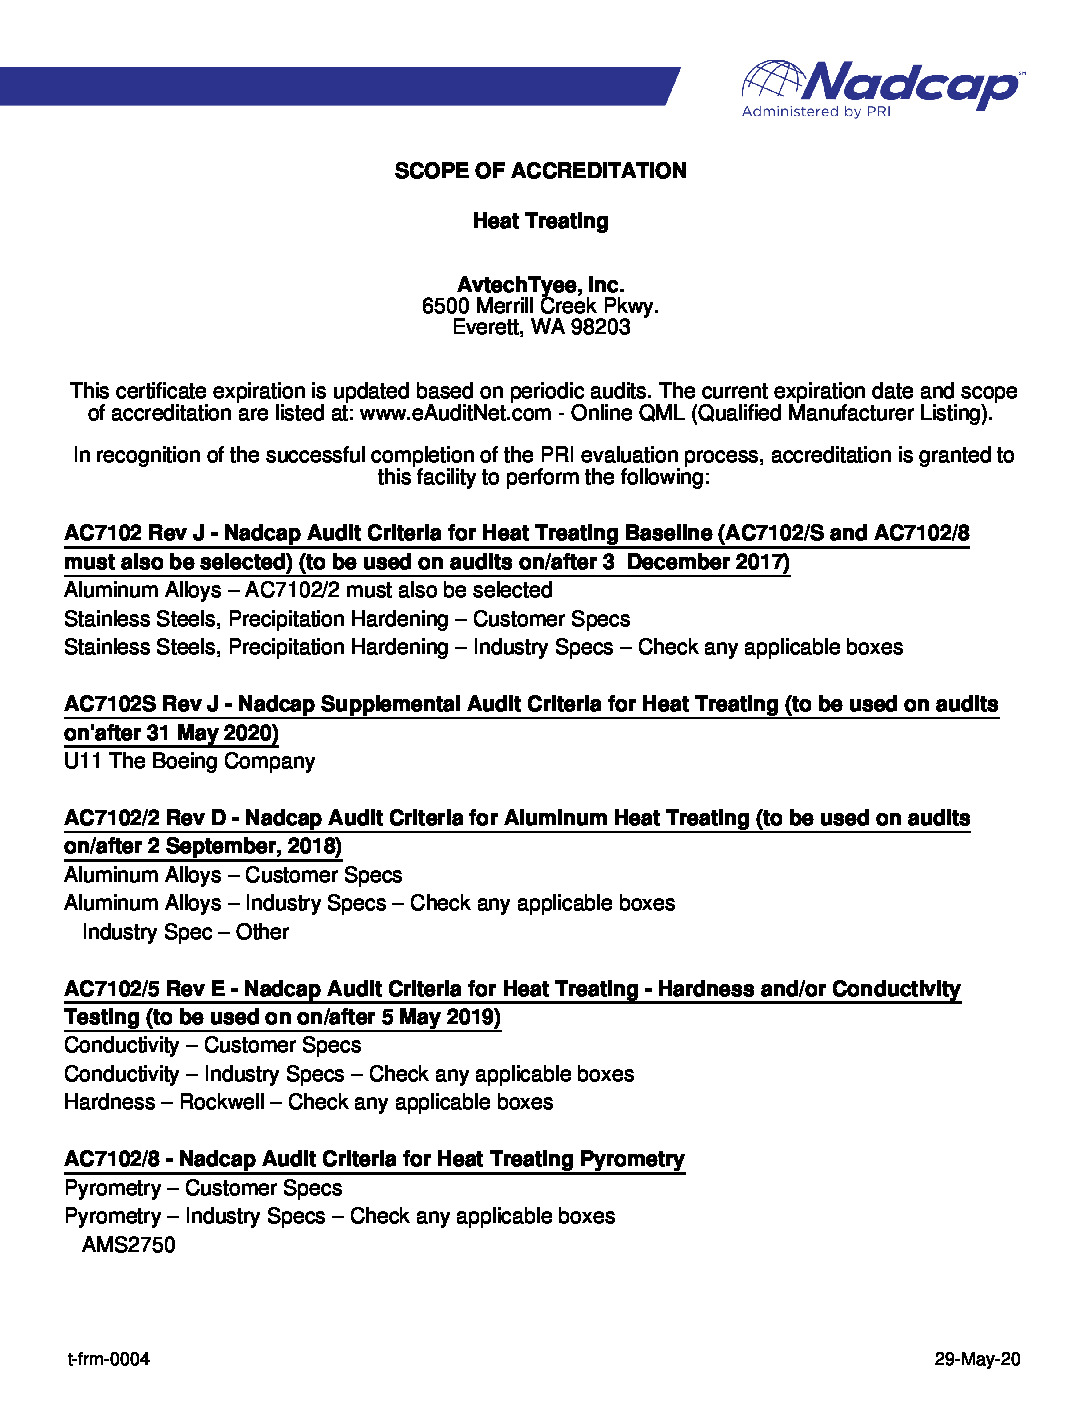 Scope of Heat Treating Accreditation